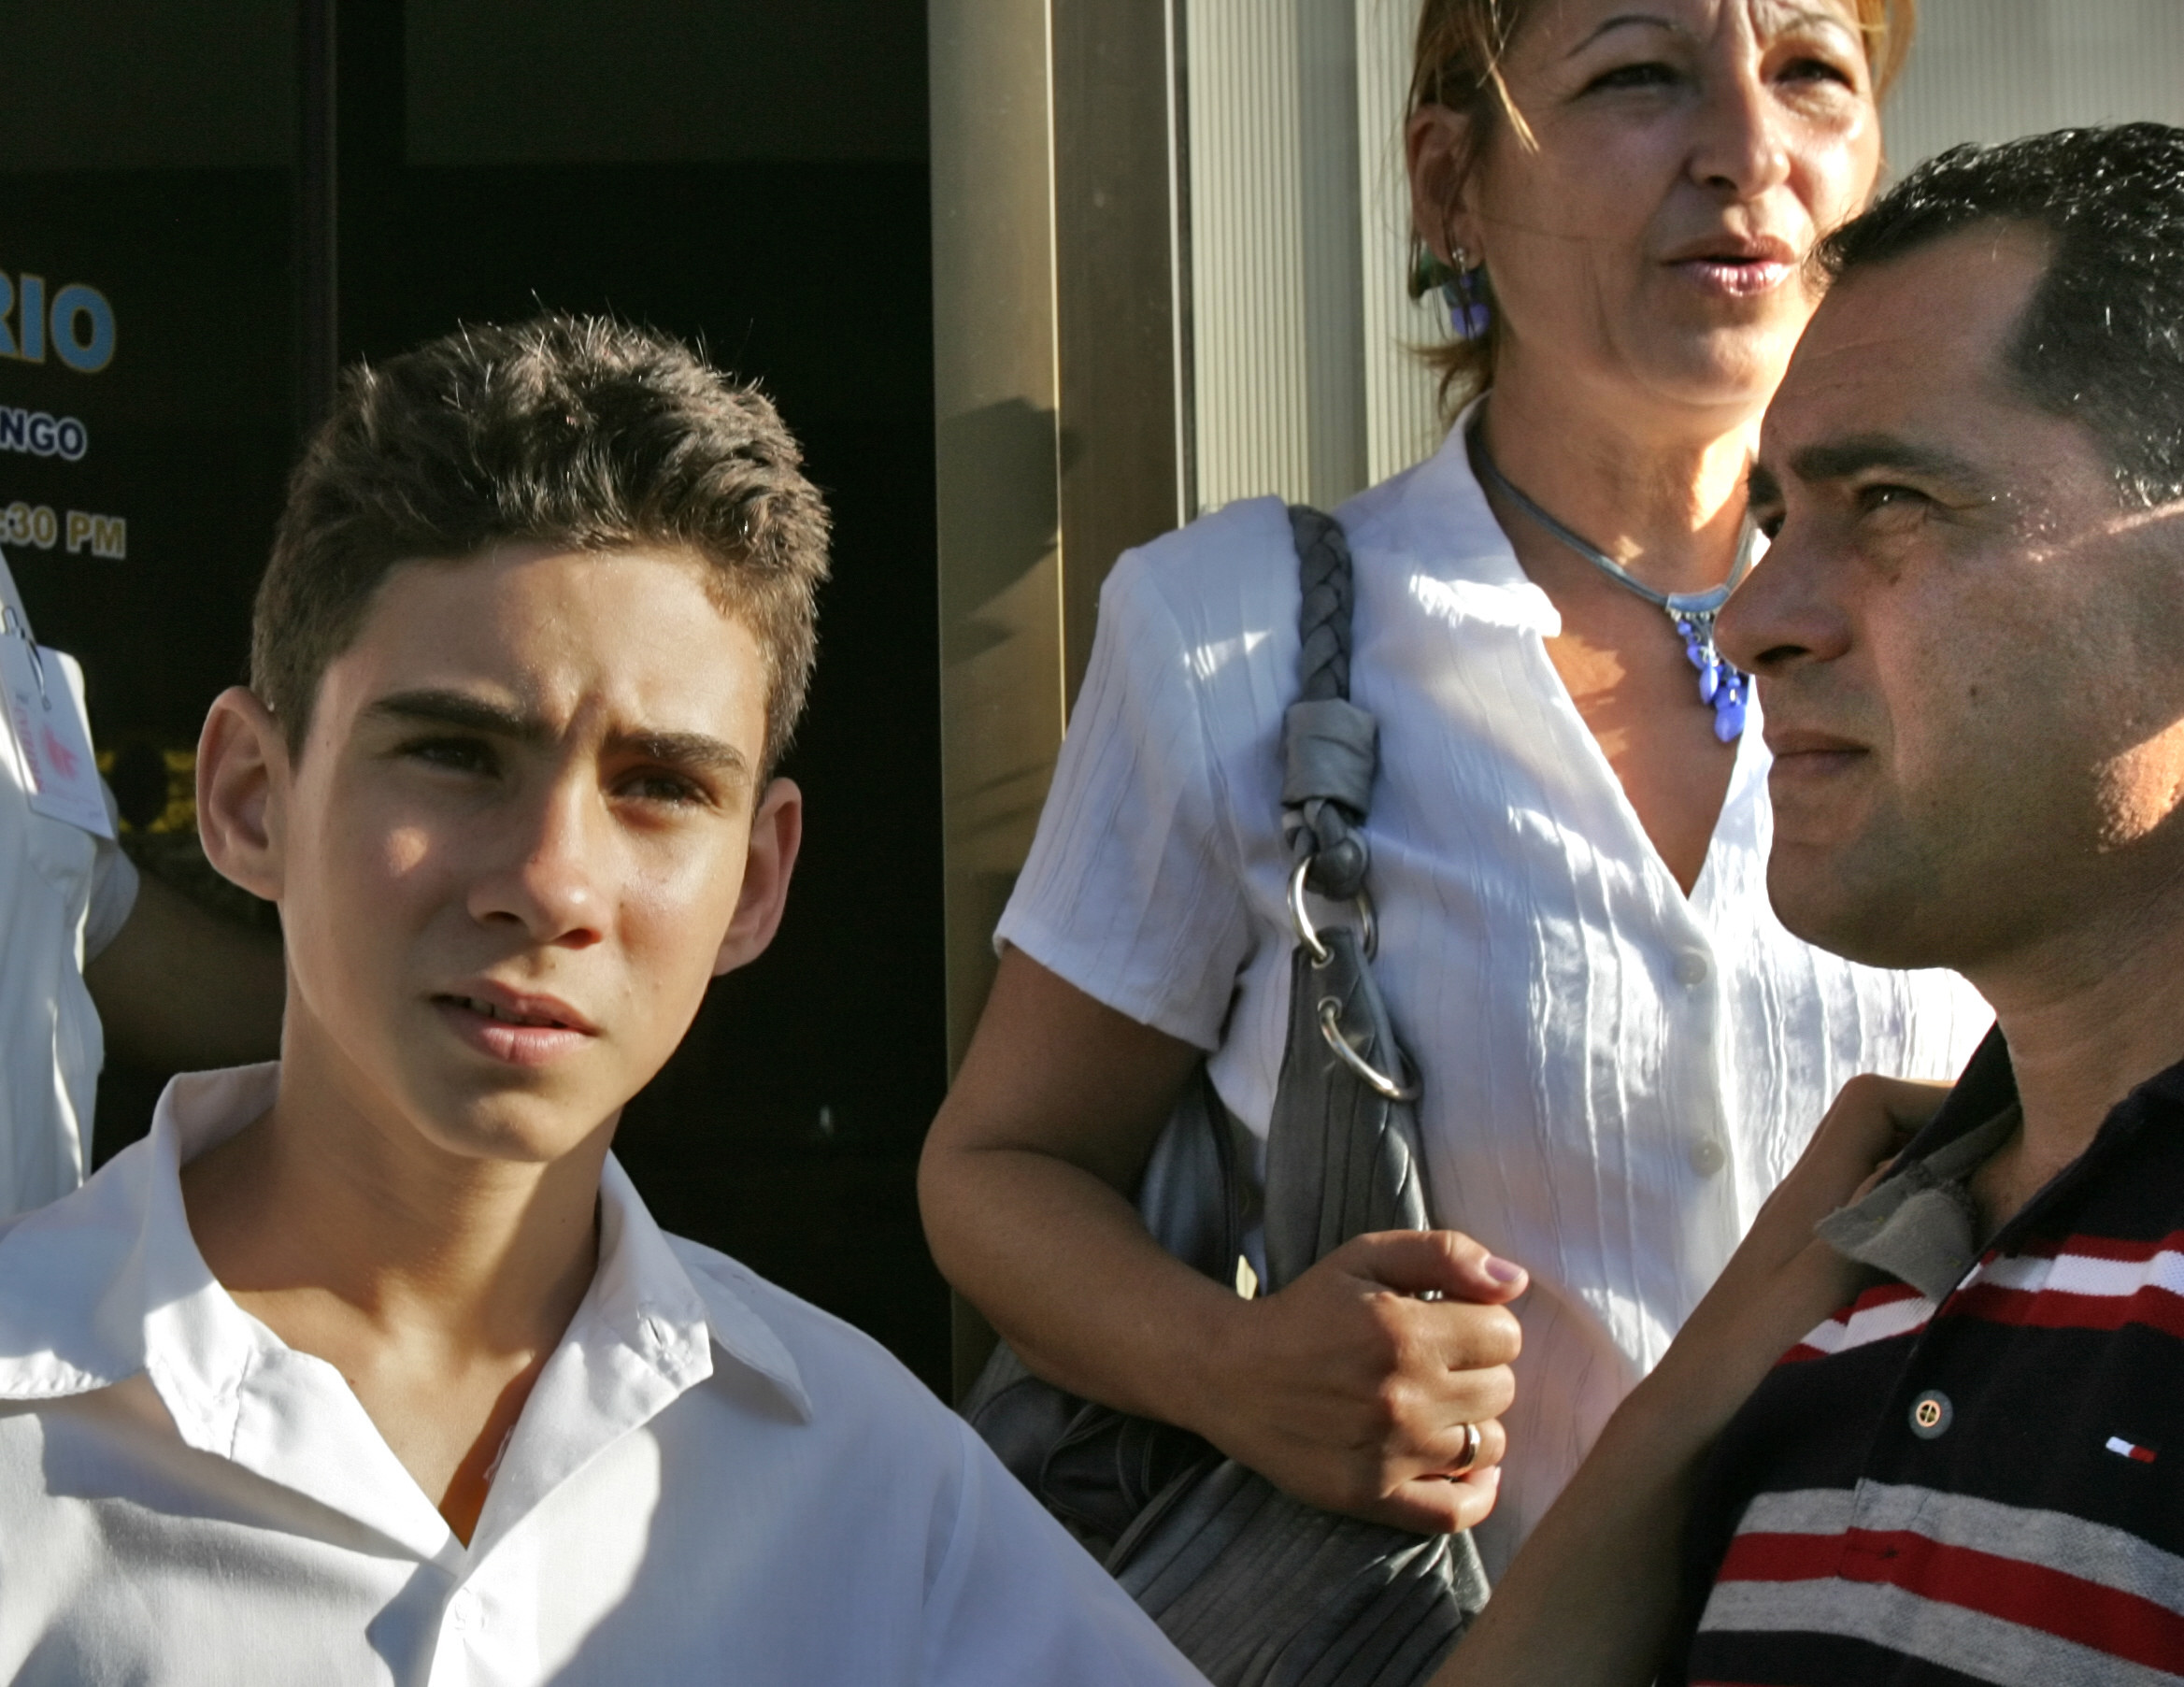 the elian gonzalez affair essay Diaz spent the next few months chatting with elian gonzalez's relatives  to appear in a photo essay about women  cary grant film an affair to.